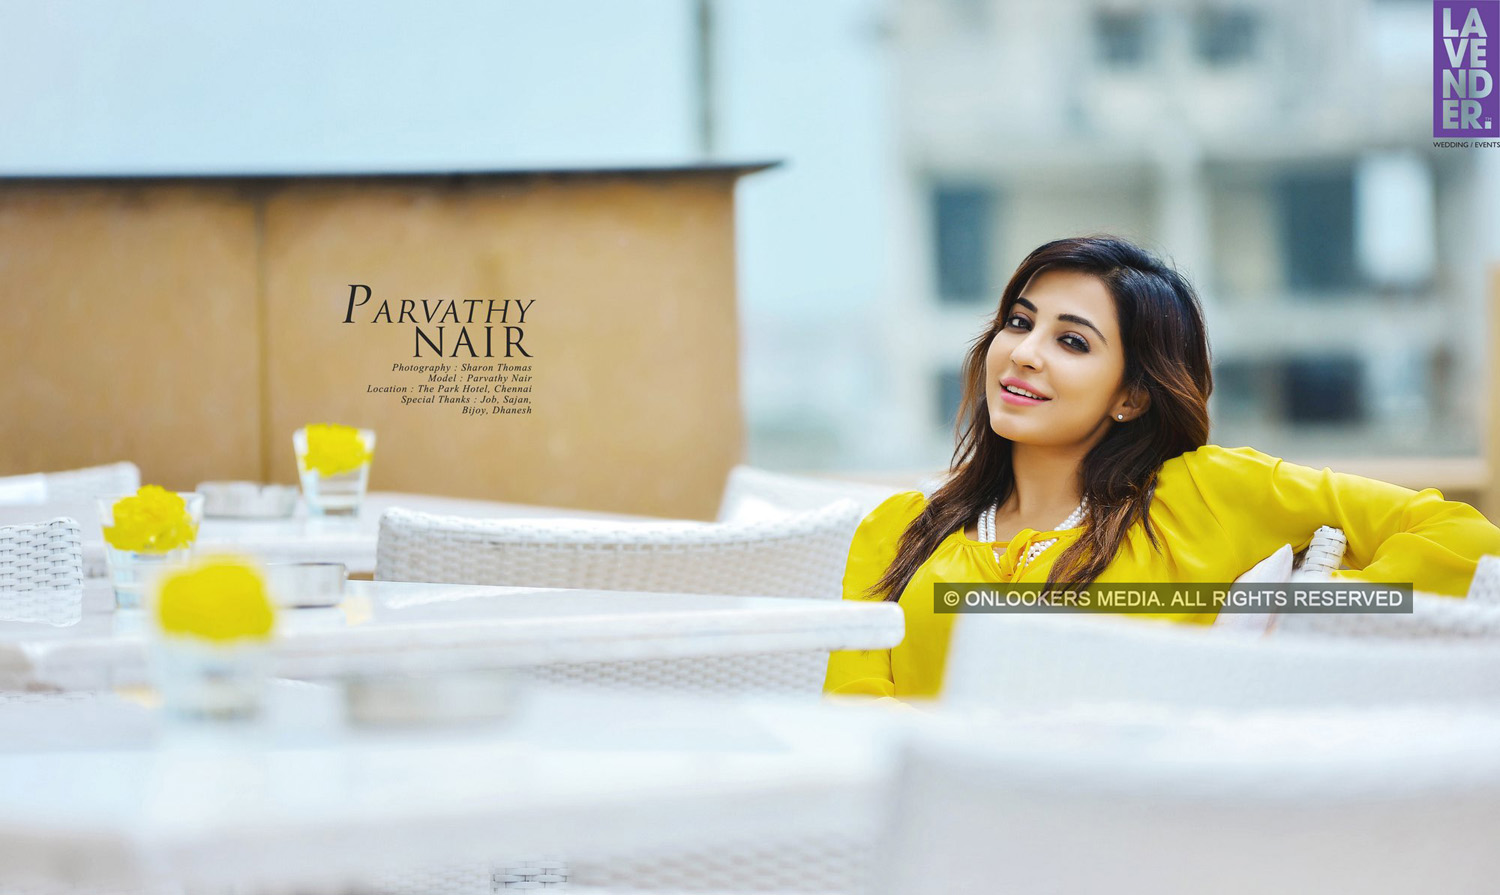 Parvathy Nair, South indian actress, actress parvathy, lavender wedding and events, sharon thomas, bijoy joseph, Parvathy Nair latest stills photos pics